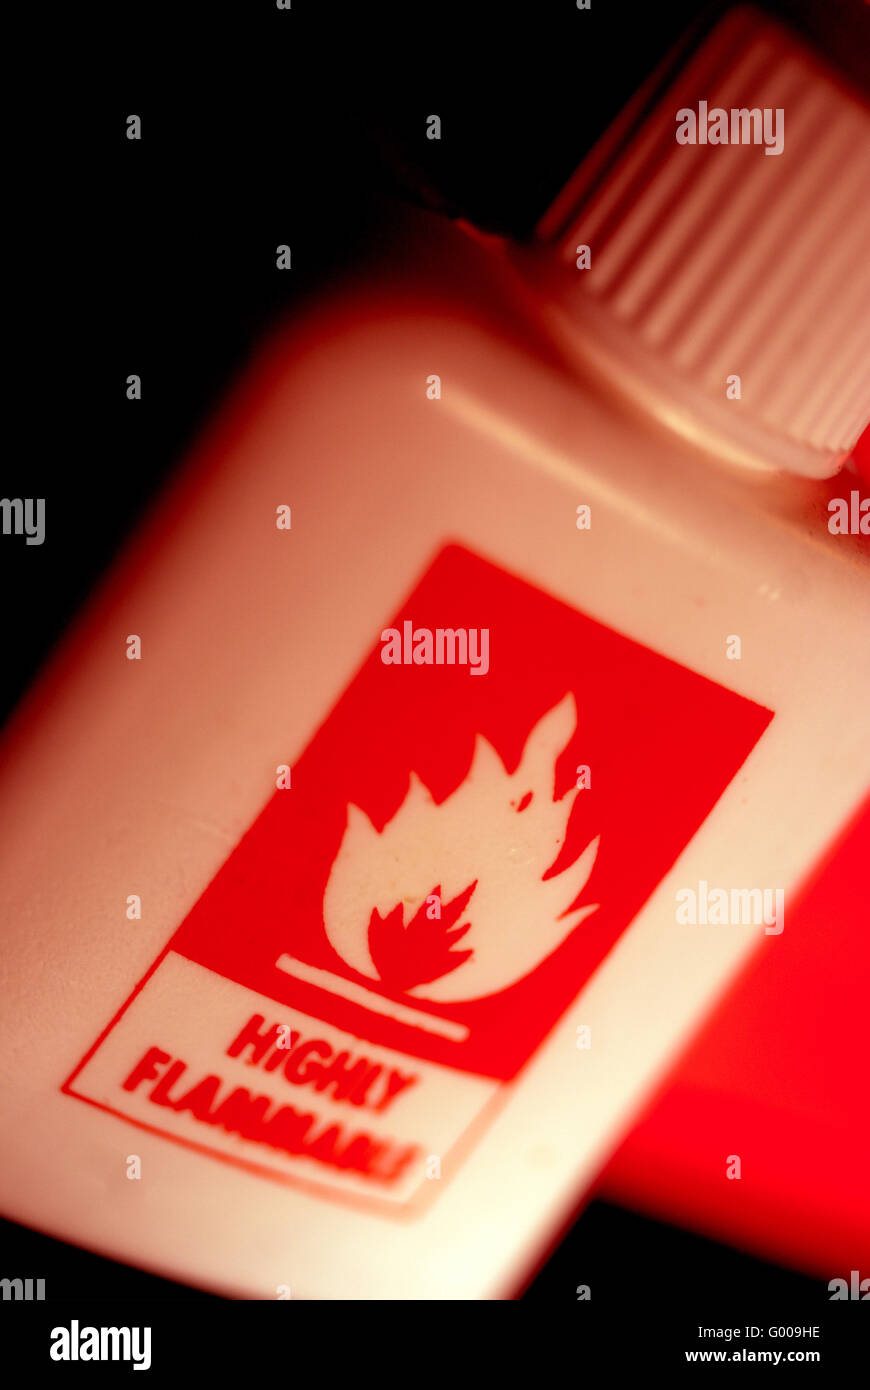 Highly Inflammable liquid in plastic bottle / Warning - Stock Image